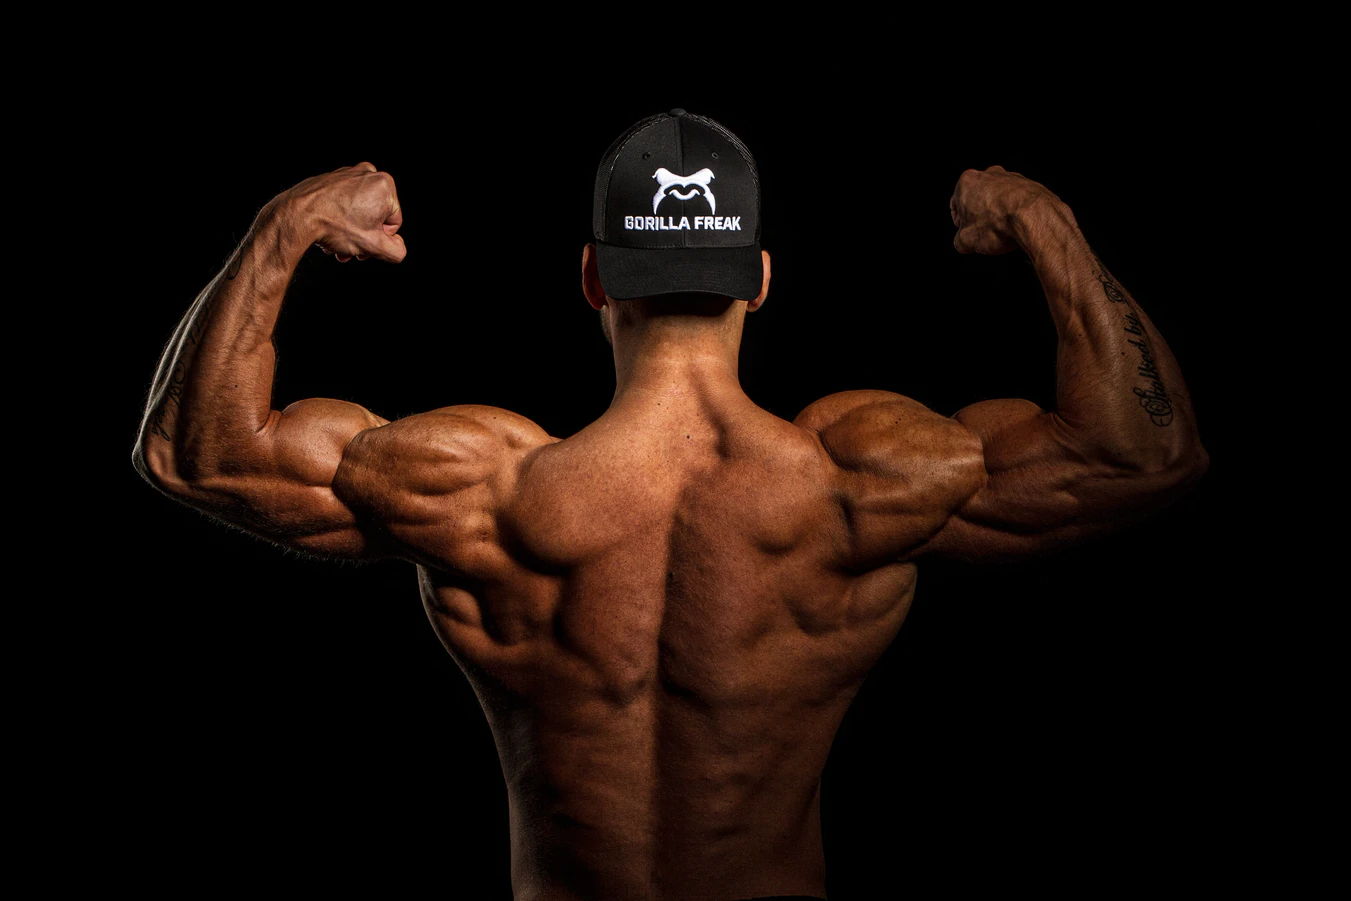 Dating a bodybuilder can be tough, here's how to do it.